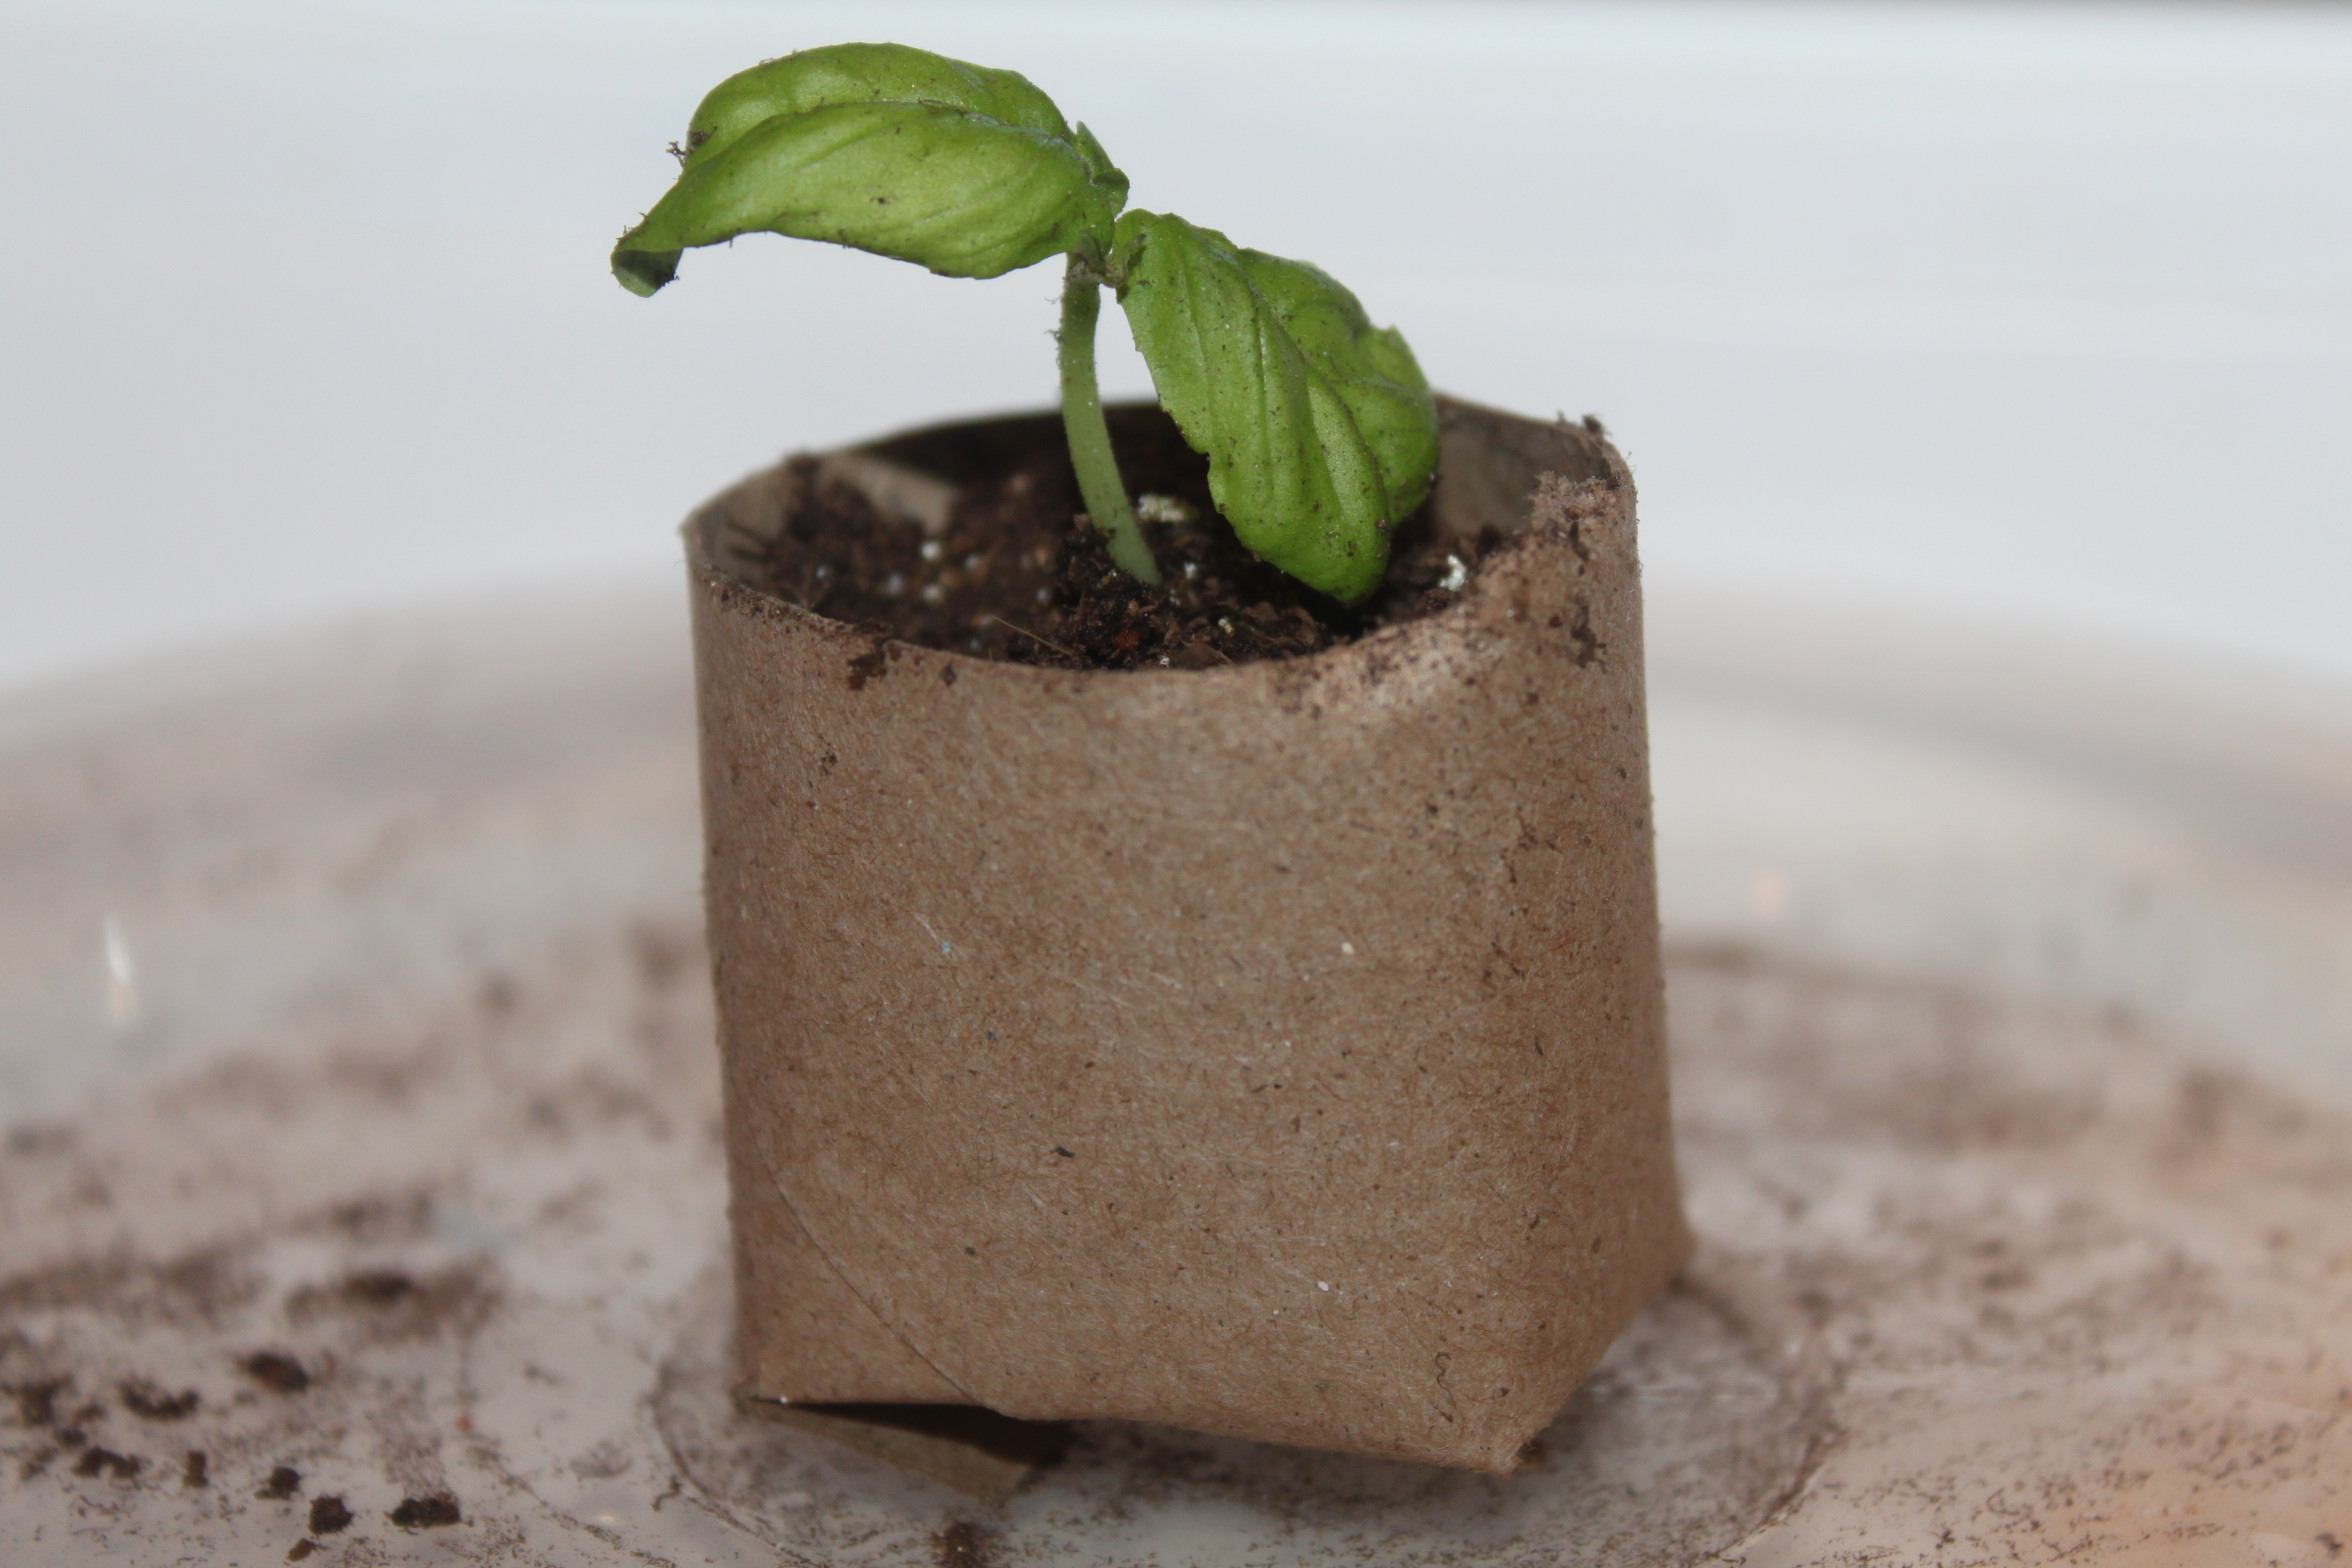 How To Make Homemade Seed Starting Containers Biodegradable, Earth Friendly, And